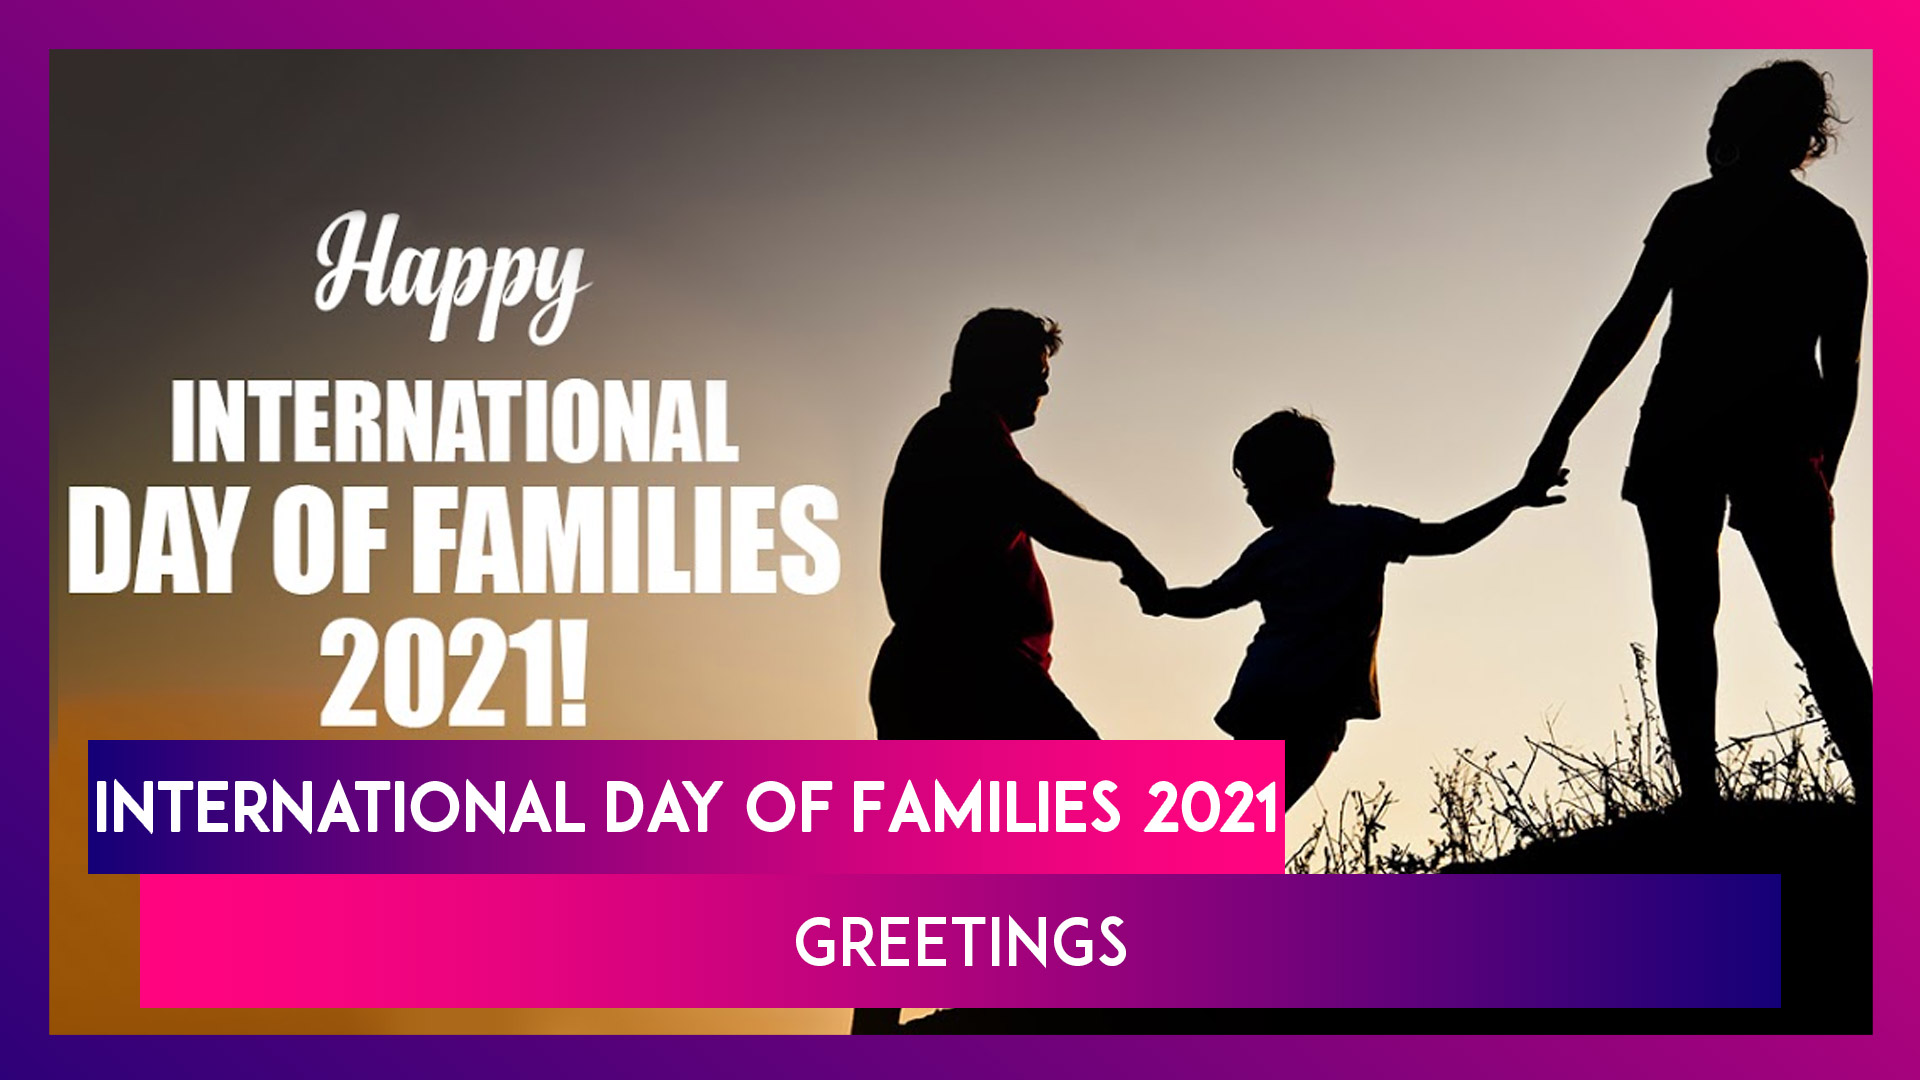 Happy International Day of Families 2021 Greetings: Best Wishes & Quotes to Caption a Family Picture